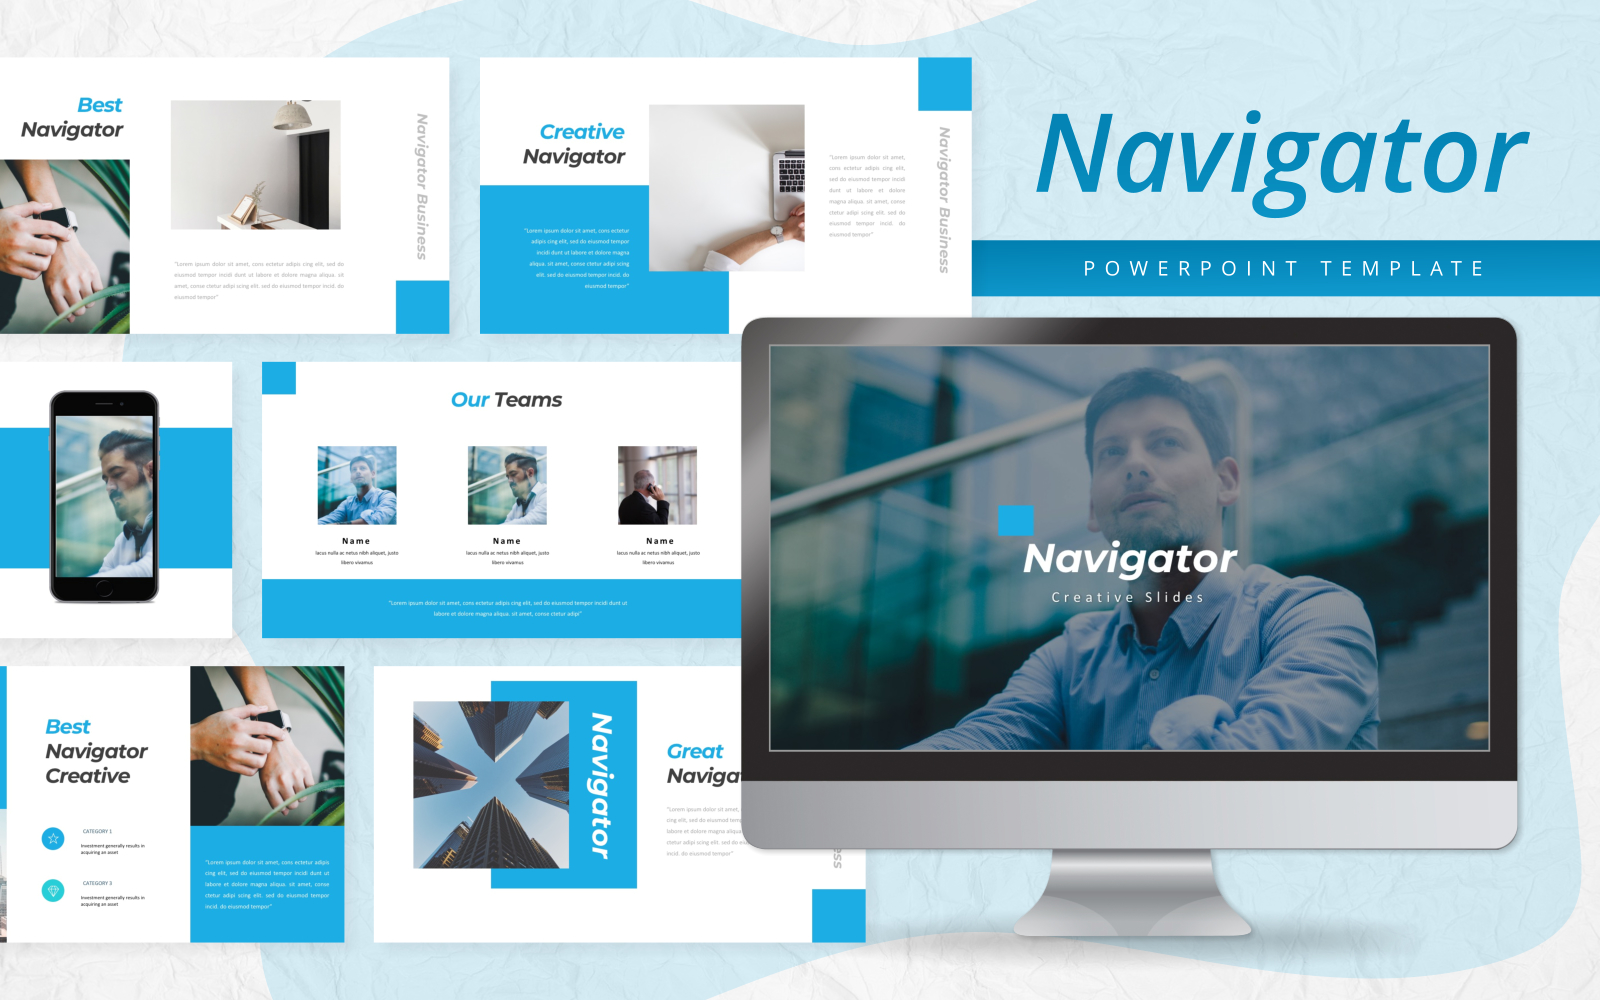 Navigator - Creative PowerPoint Template